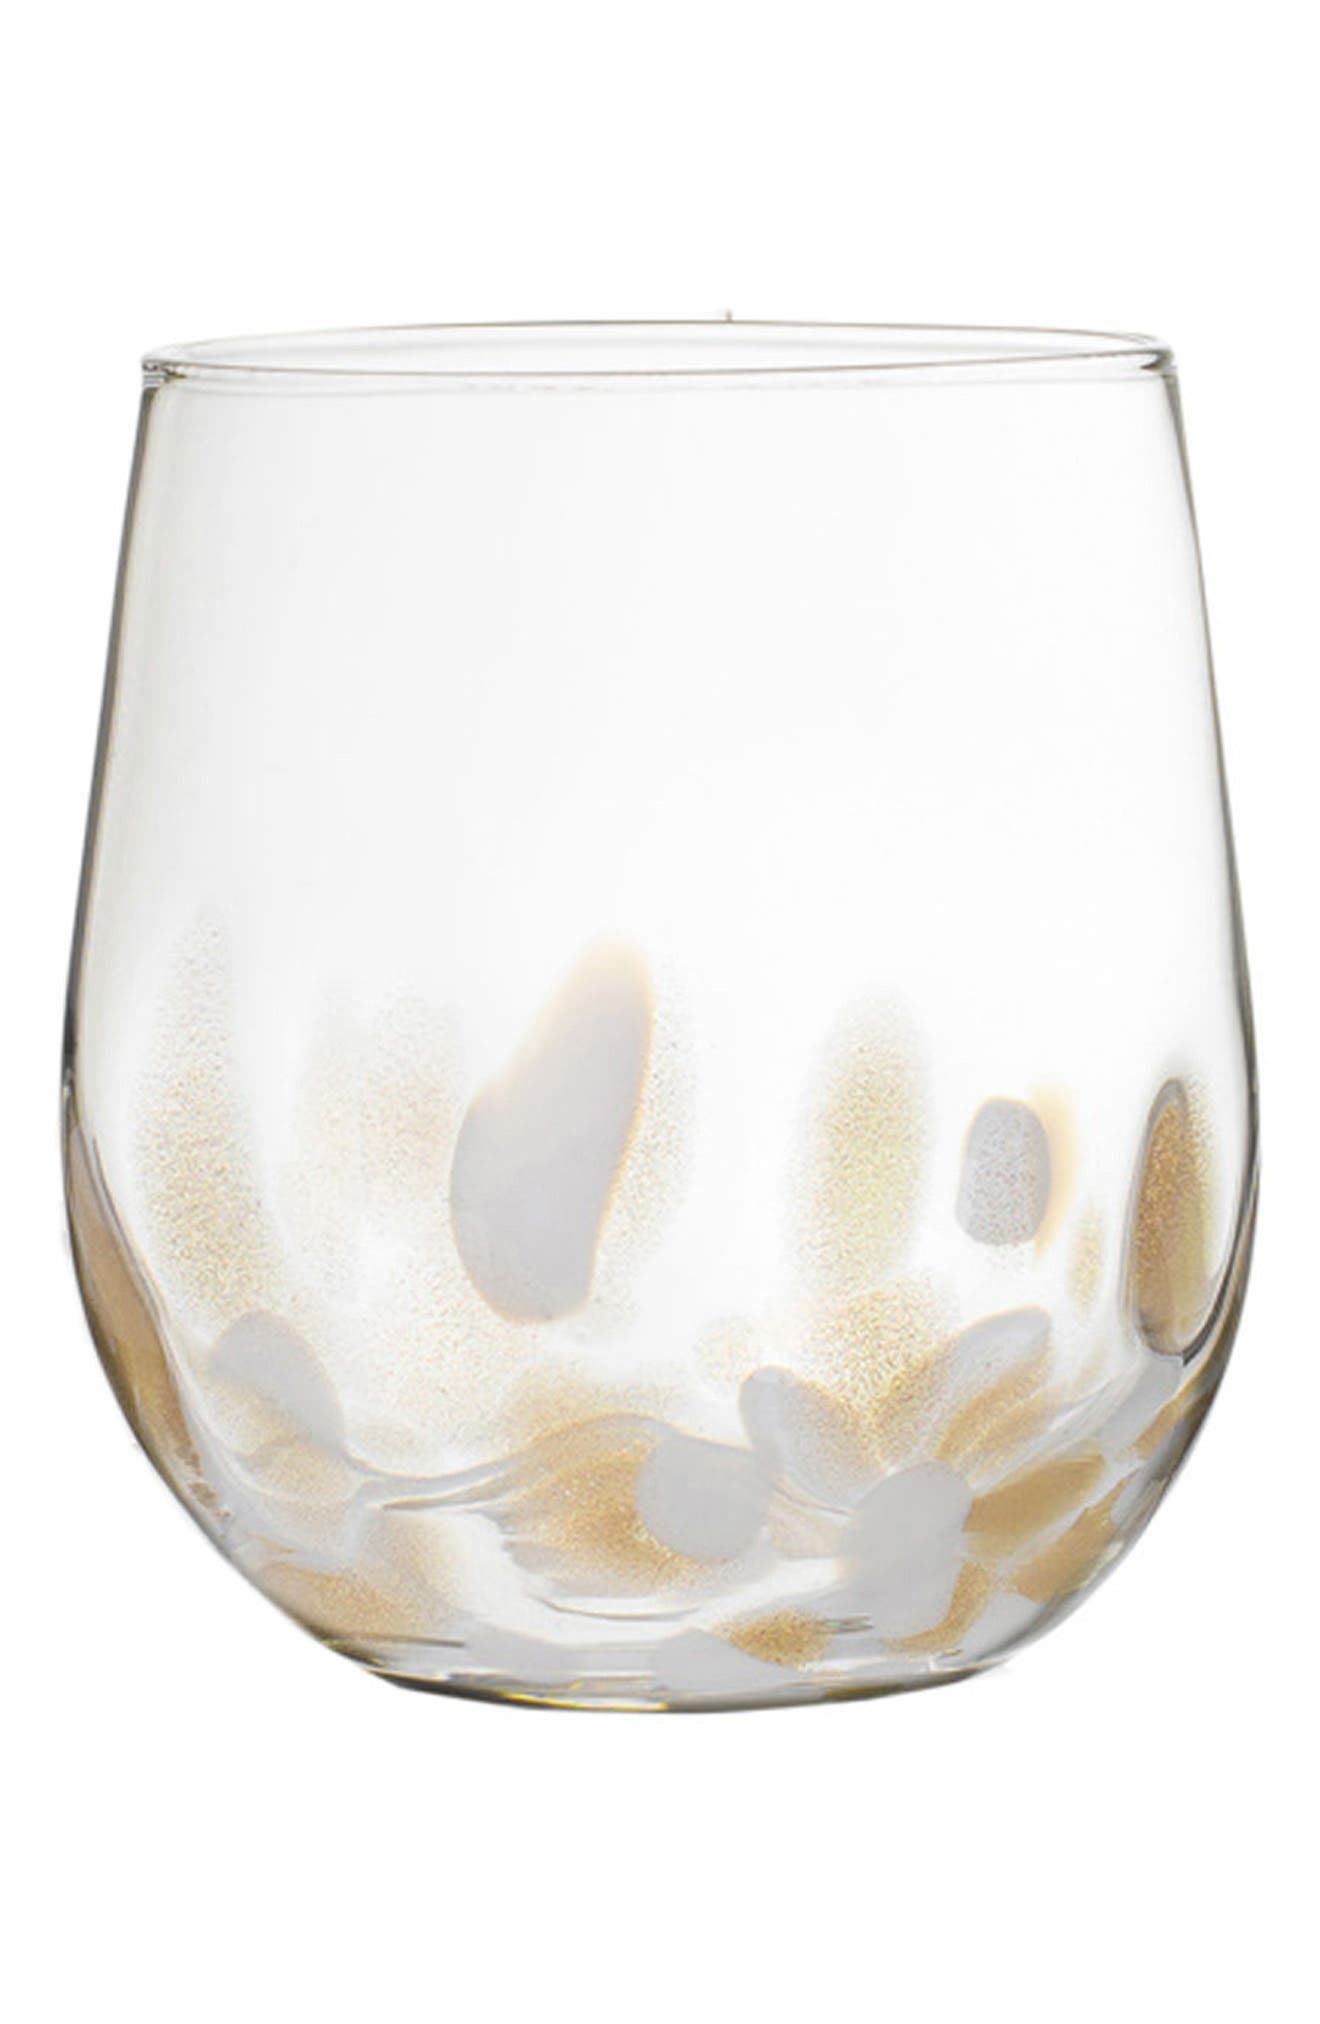 American Atelier Simone Set of 4 Stemless Wine Glasses